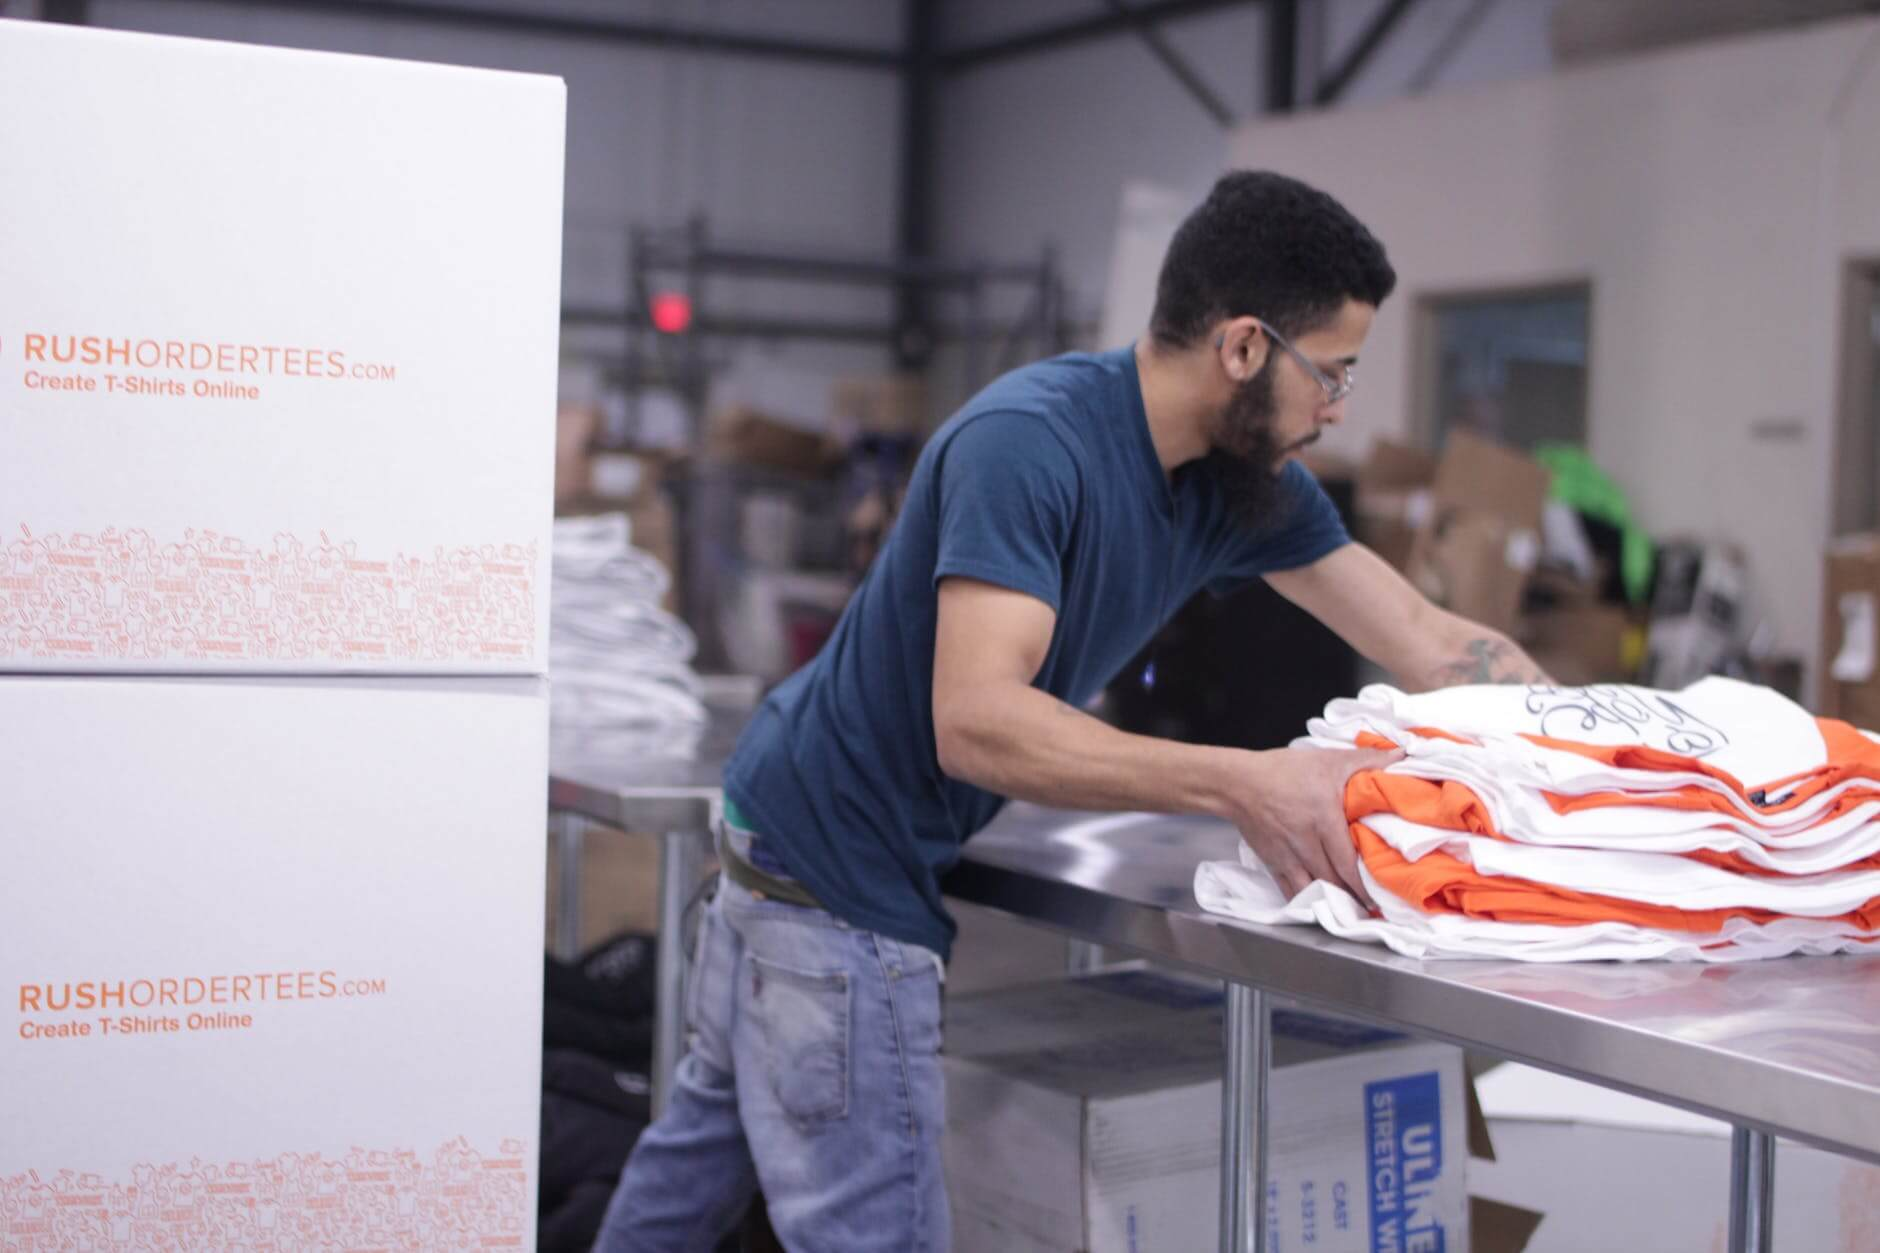 Worker sorting goods in an e-commerce logistics operation